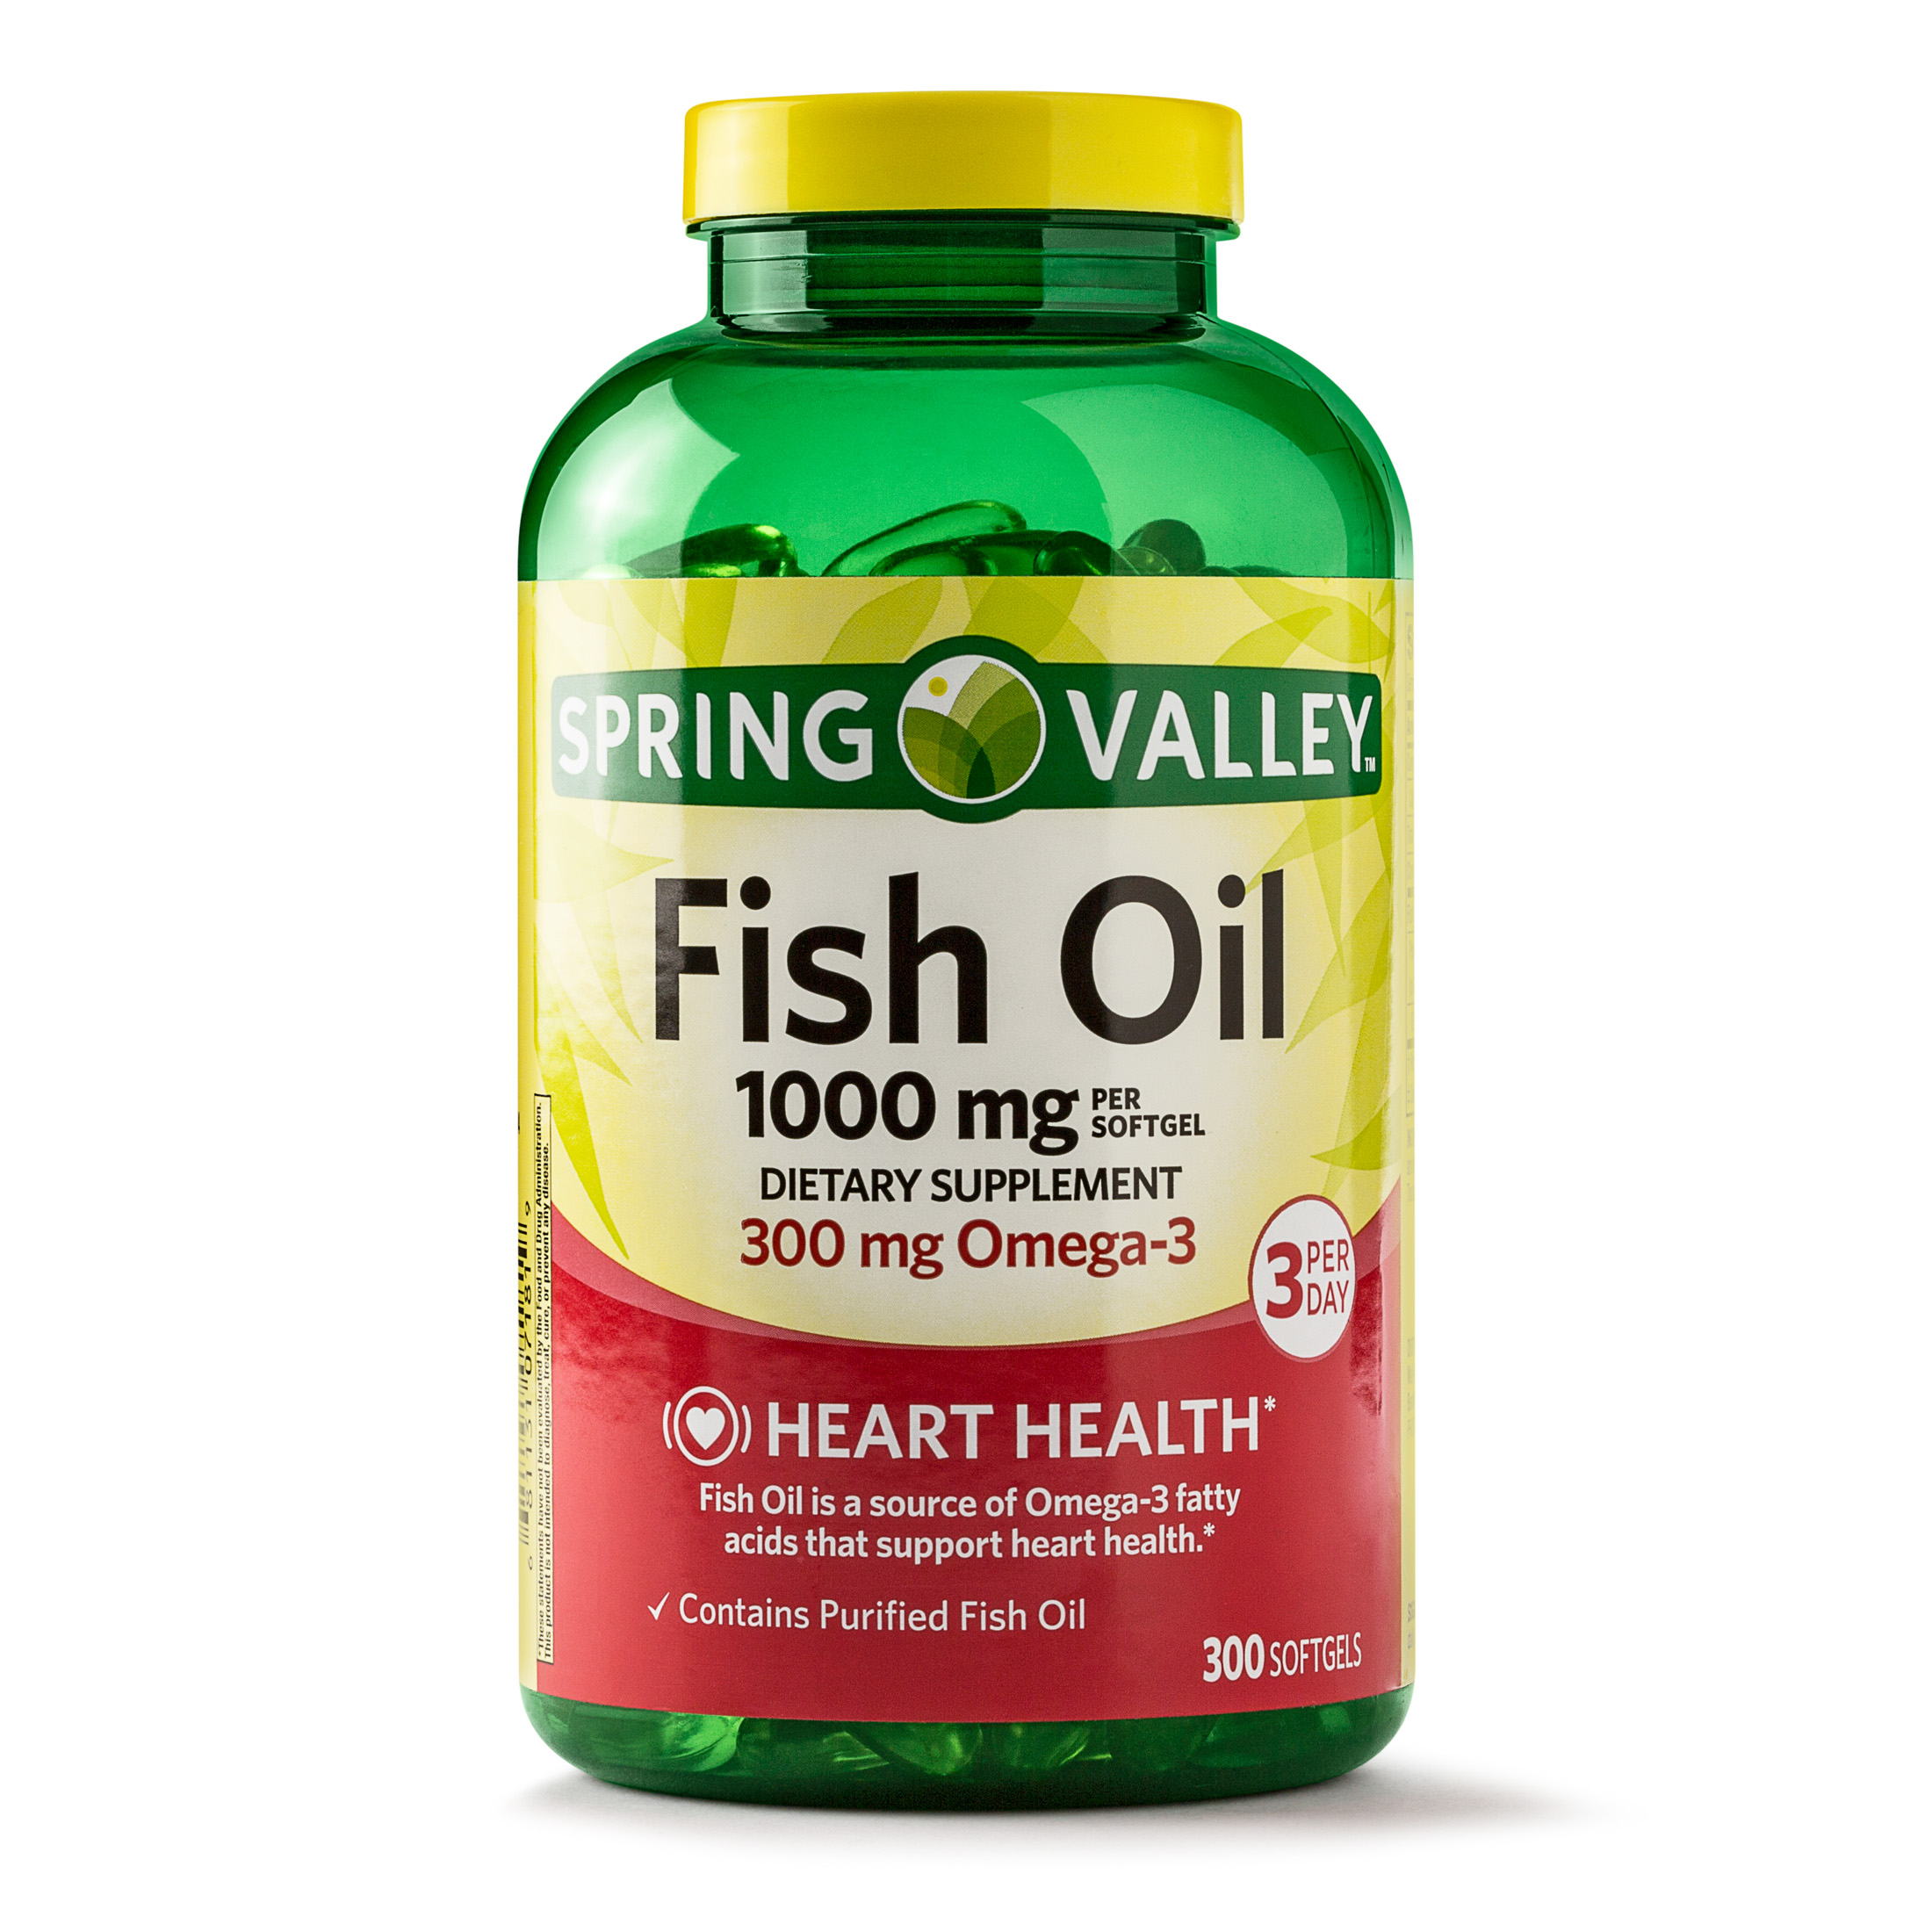 Spring Valley Fish Oil Softgels, 1000 mg, 300 Ct